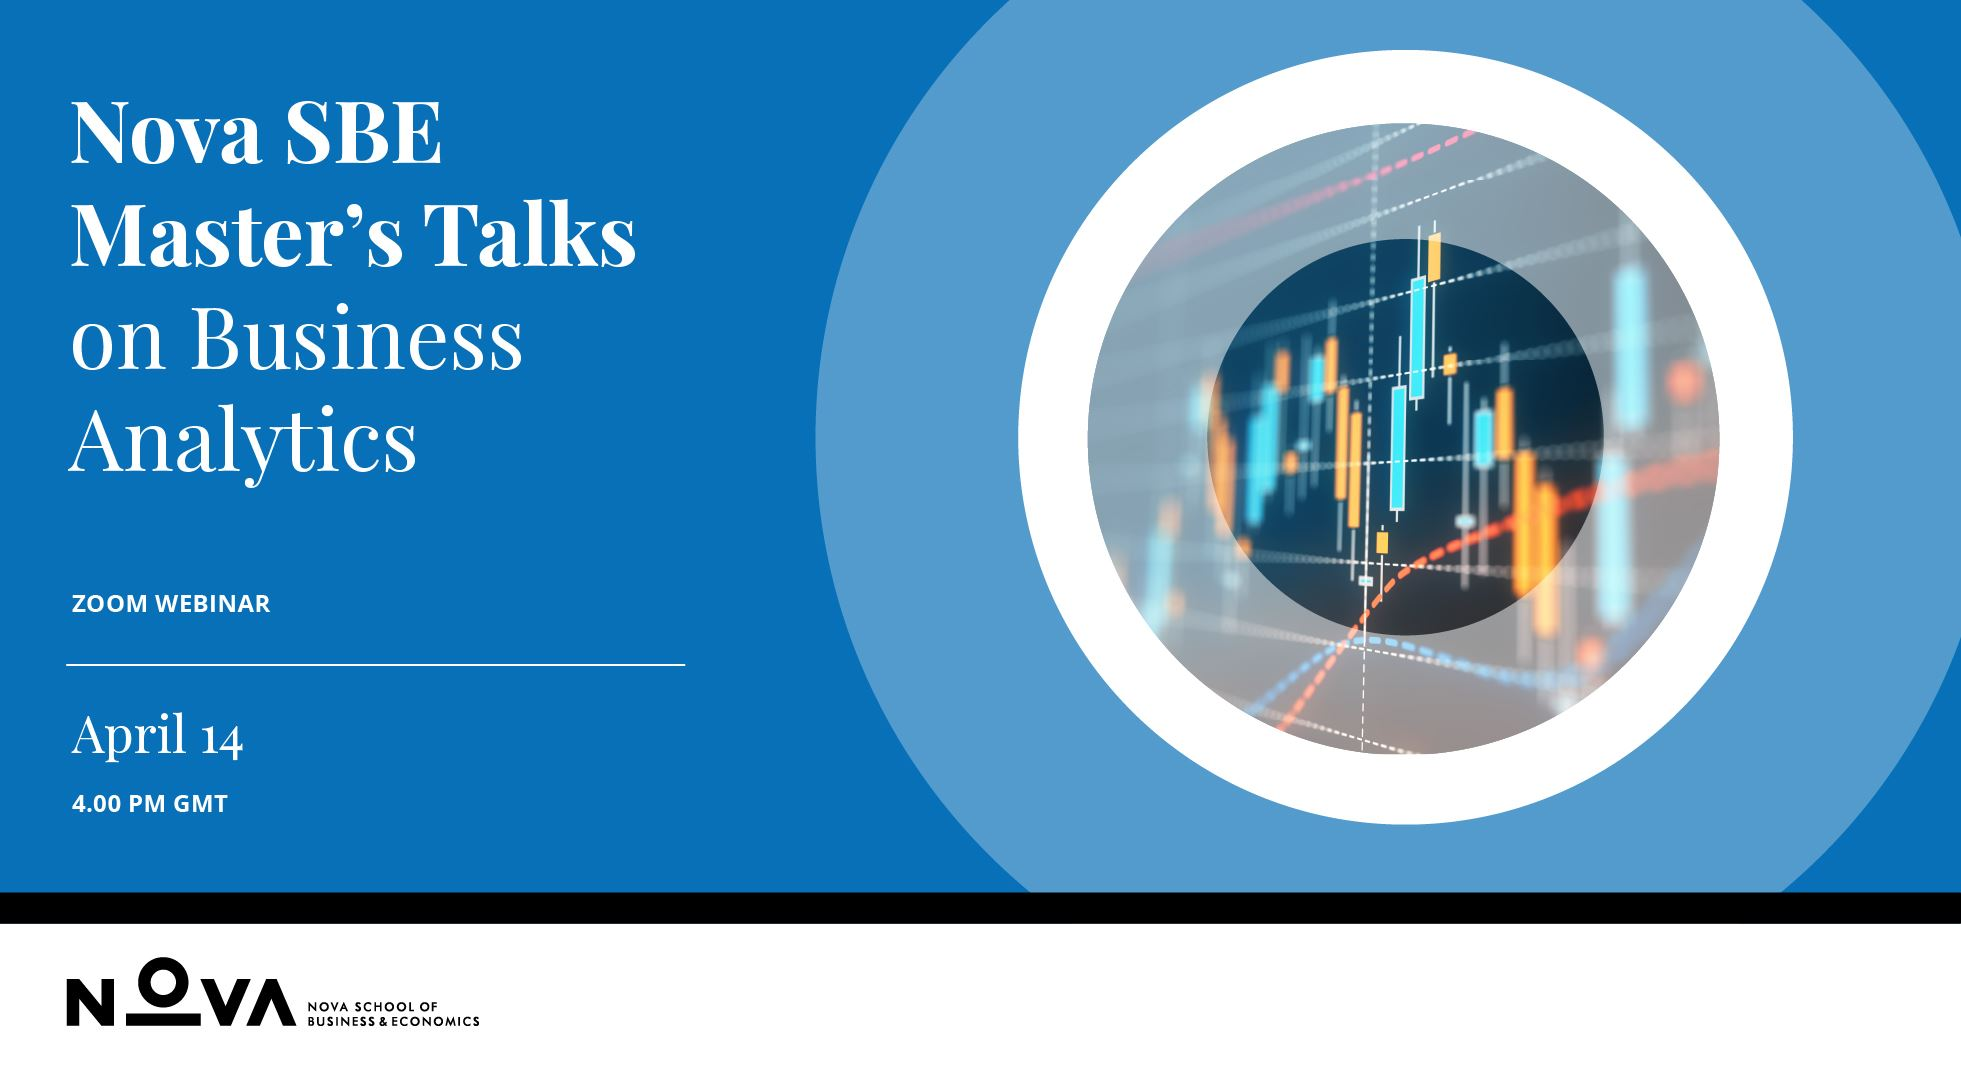 Master's Talks on Business Analytics